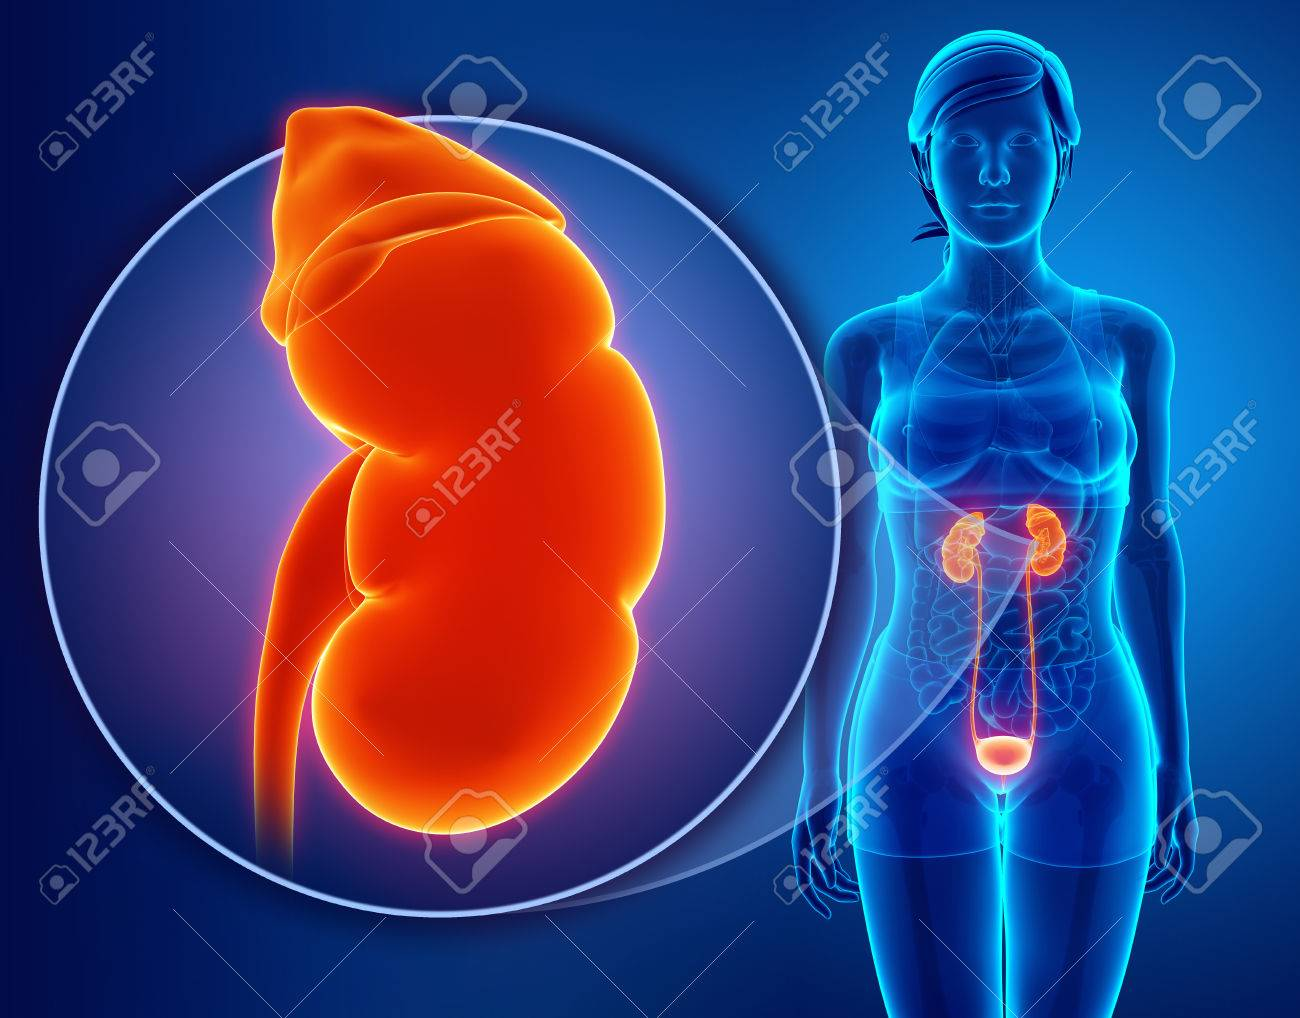 3d Render Of Human Kidneys Anatomy Stock Photo Picture And Royalty